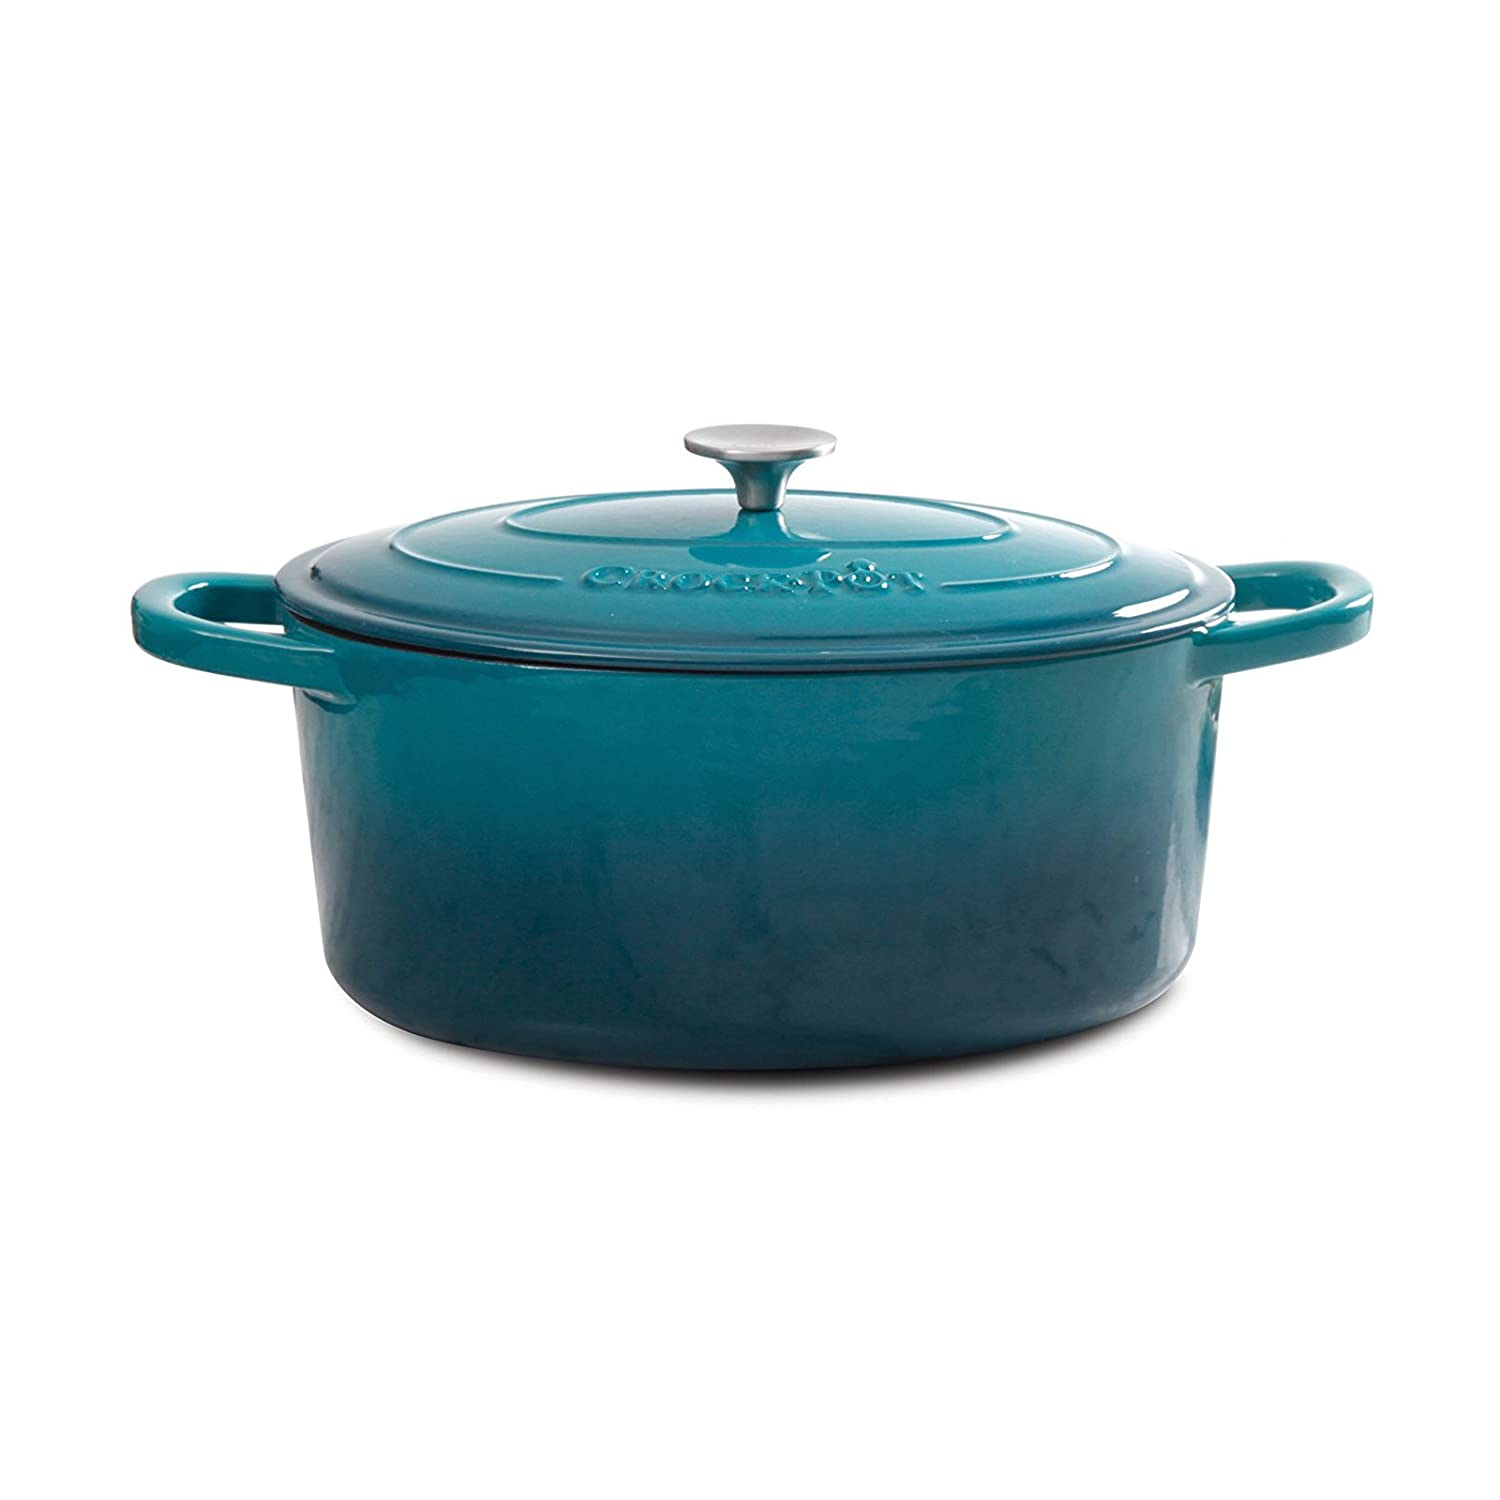 Crock Pot 109470.02 Artisan Enameled Cast Iron 5-Quart Round Dutch Oven, Teal Ombre